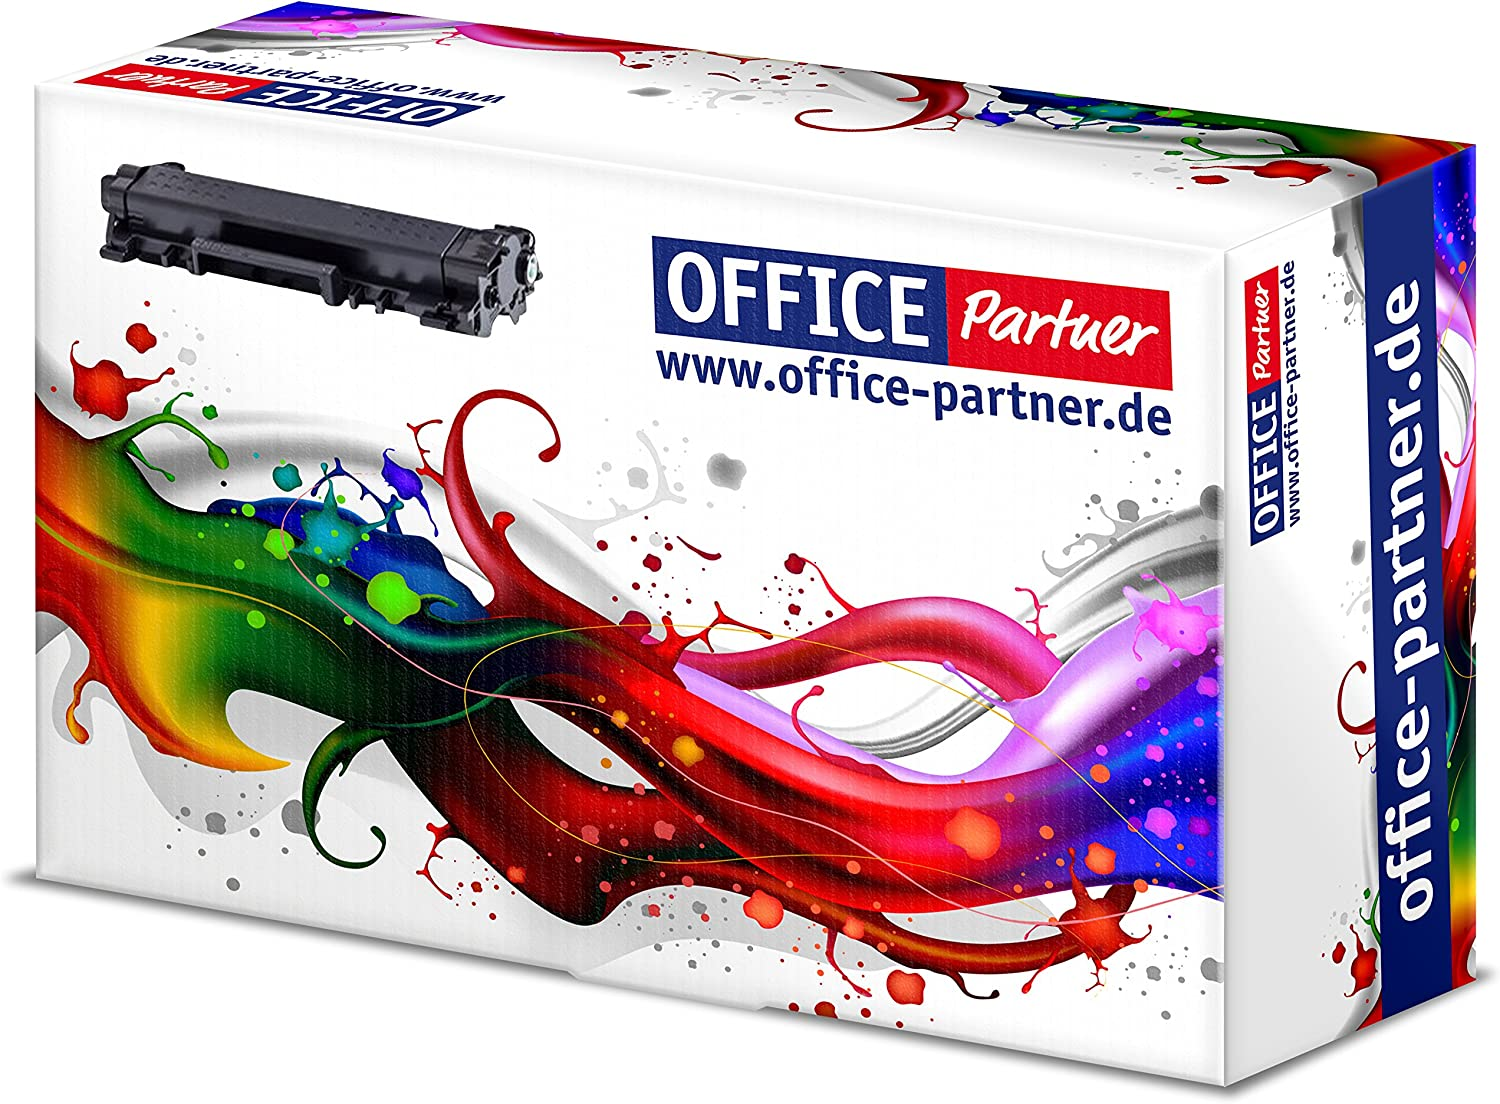 OFFICE-Partner Premium Tóner y Cartucho láser TN2420 Compatible ...